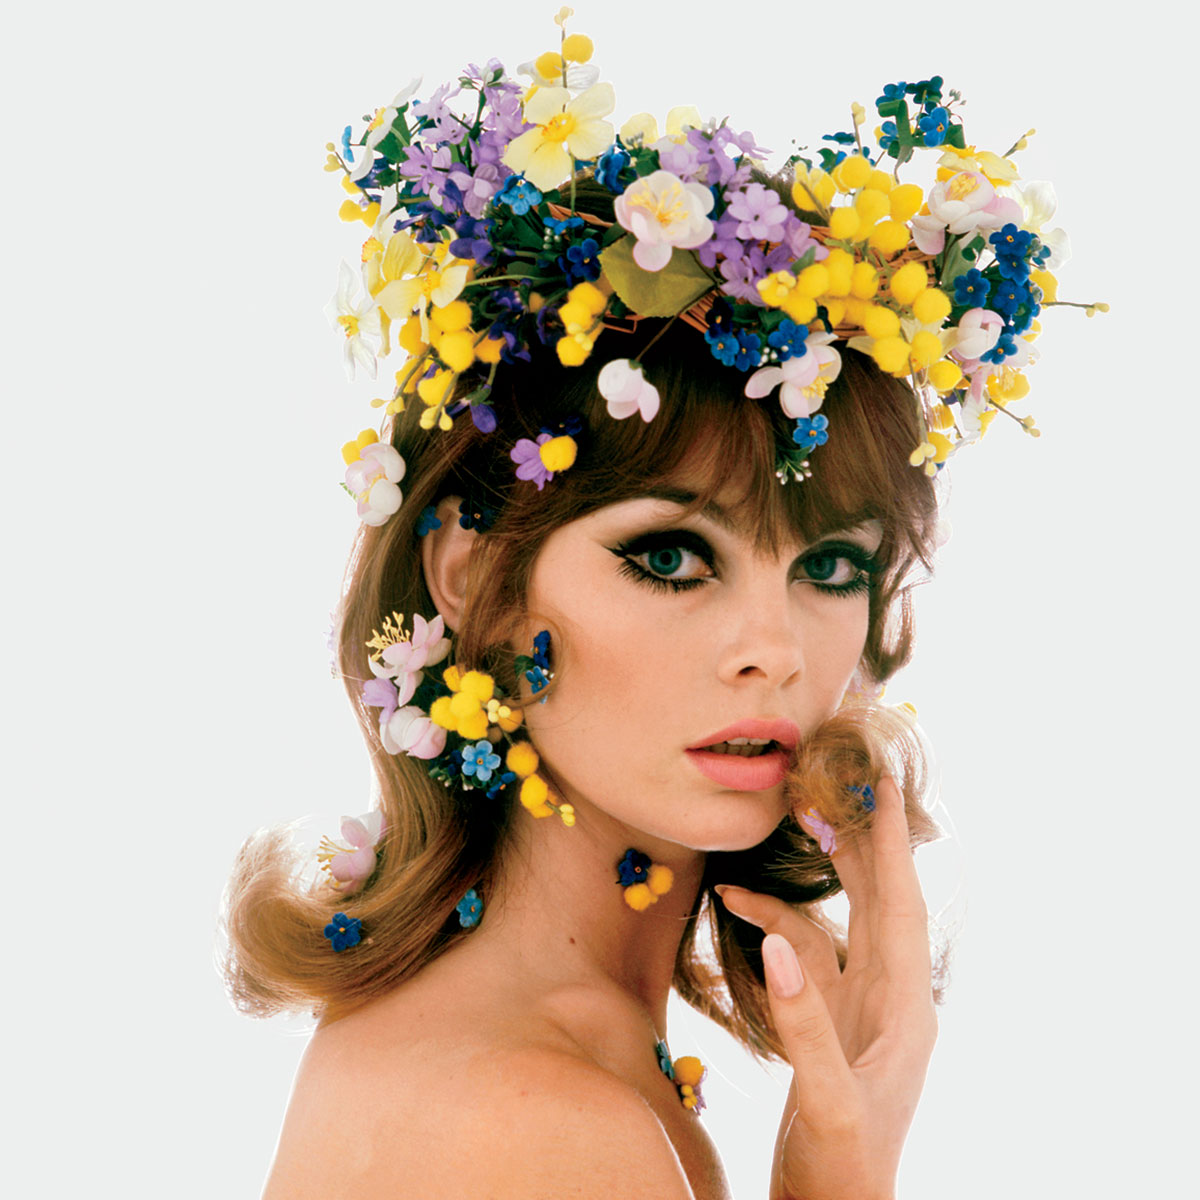 Jean Shrimpton Vogue 1965